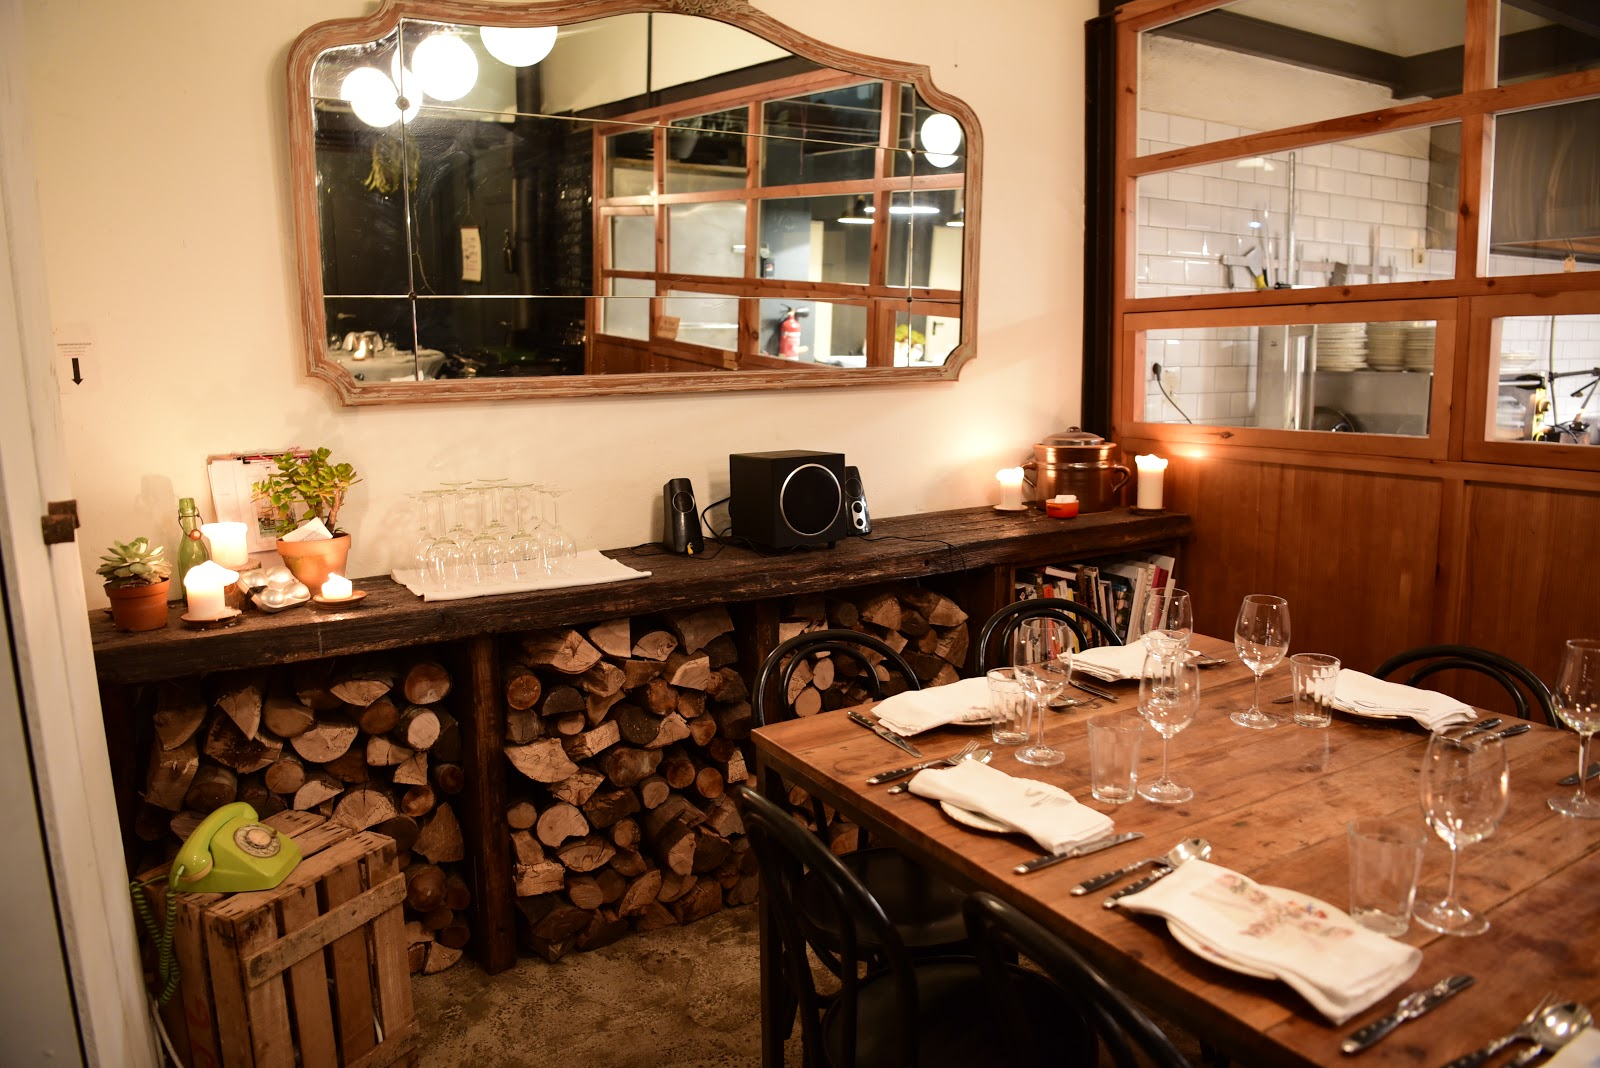 hedofoodia rooftop smokehouse barcelone. Black Bedroom Furniture Sets. Home Design Ideas